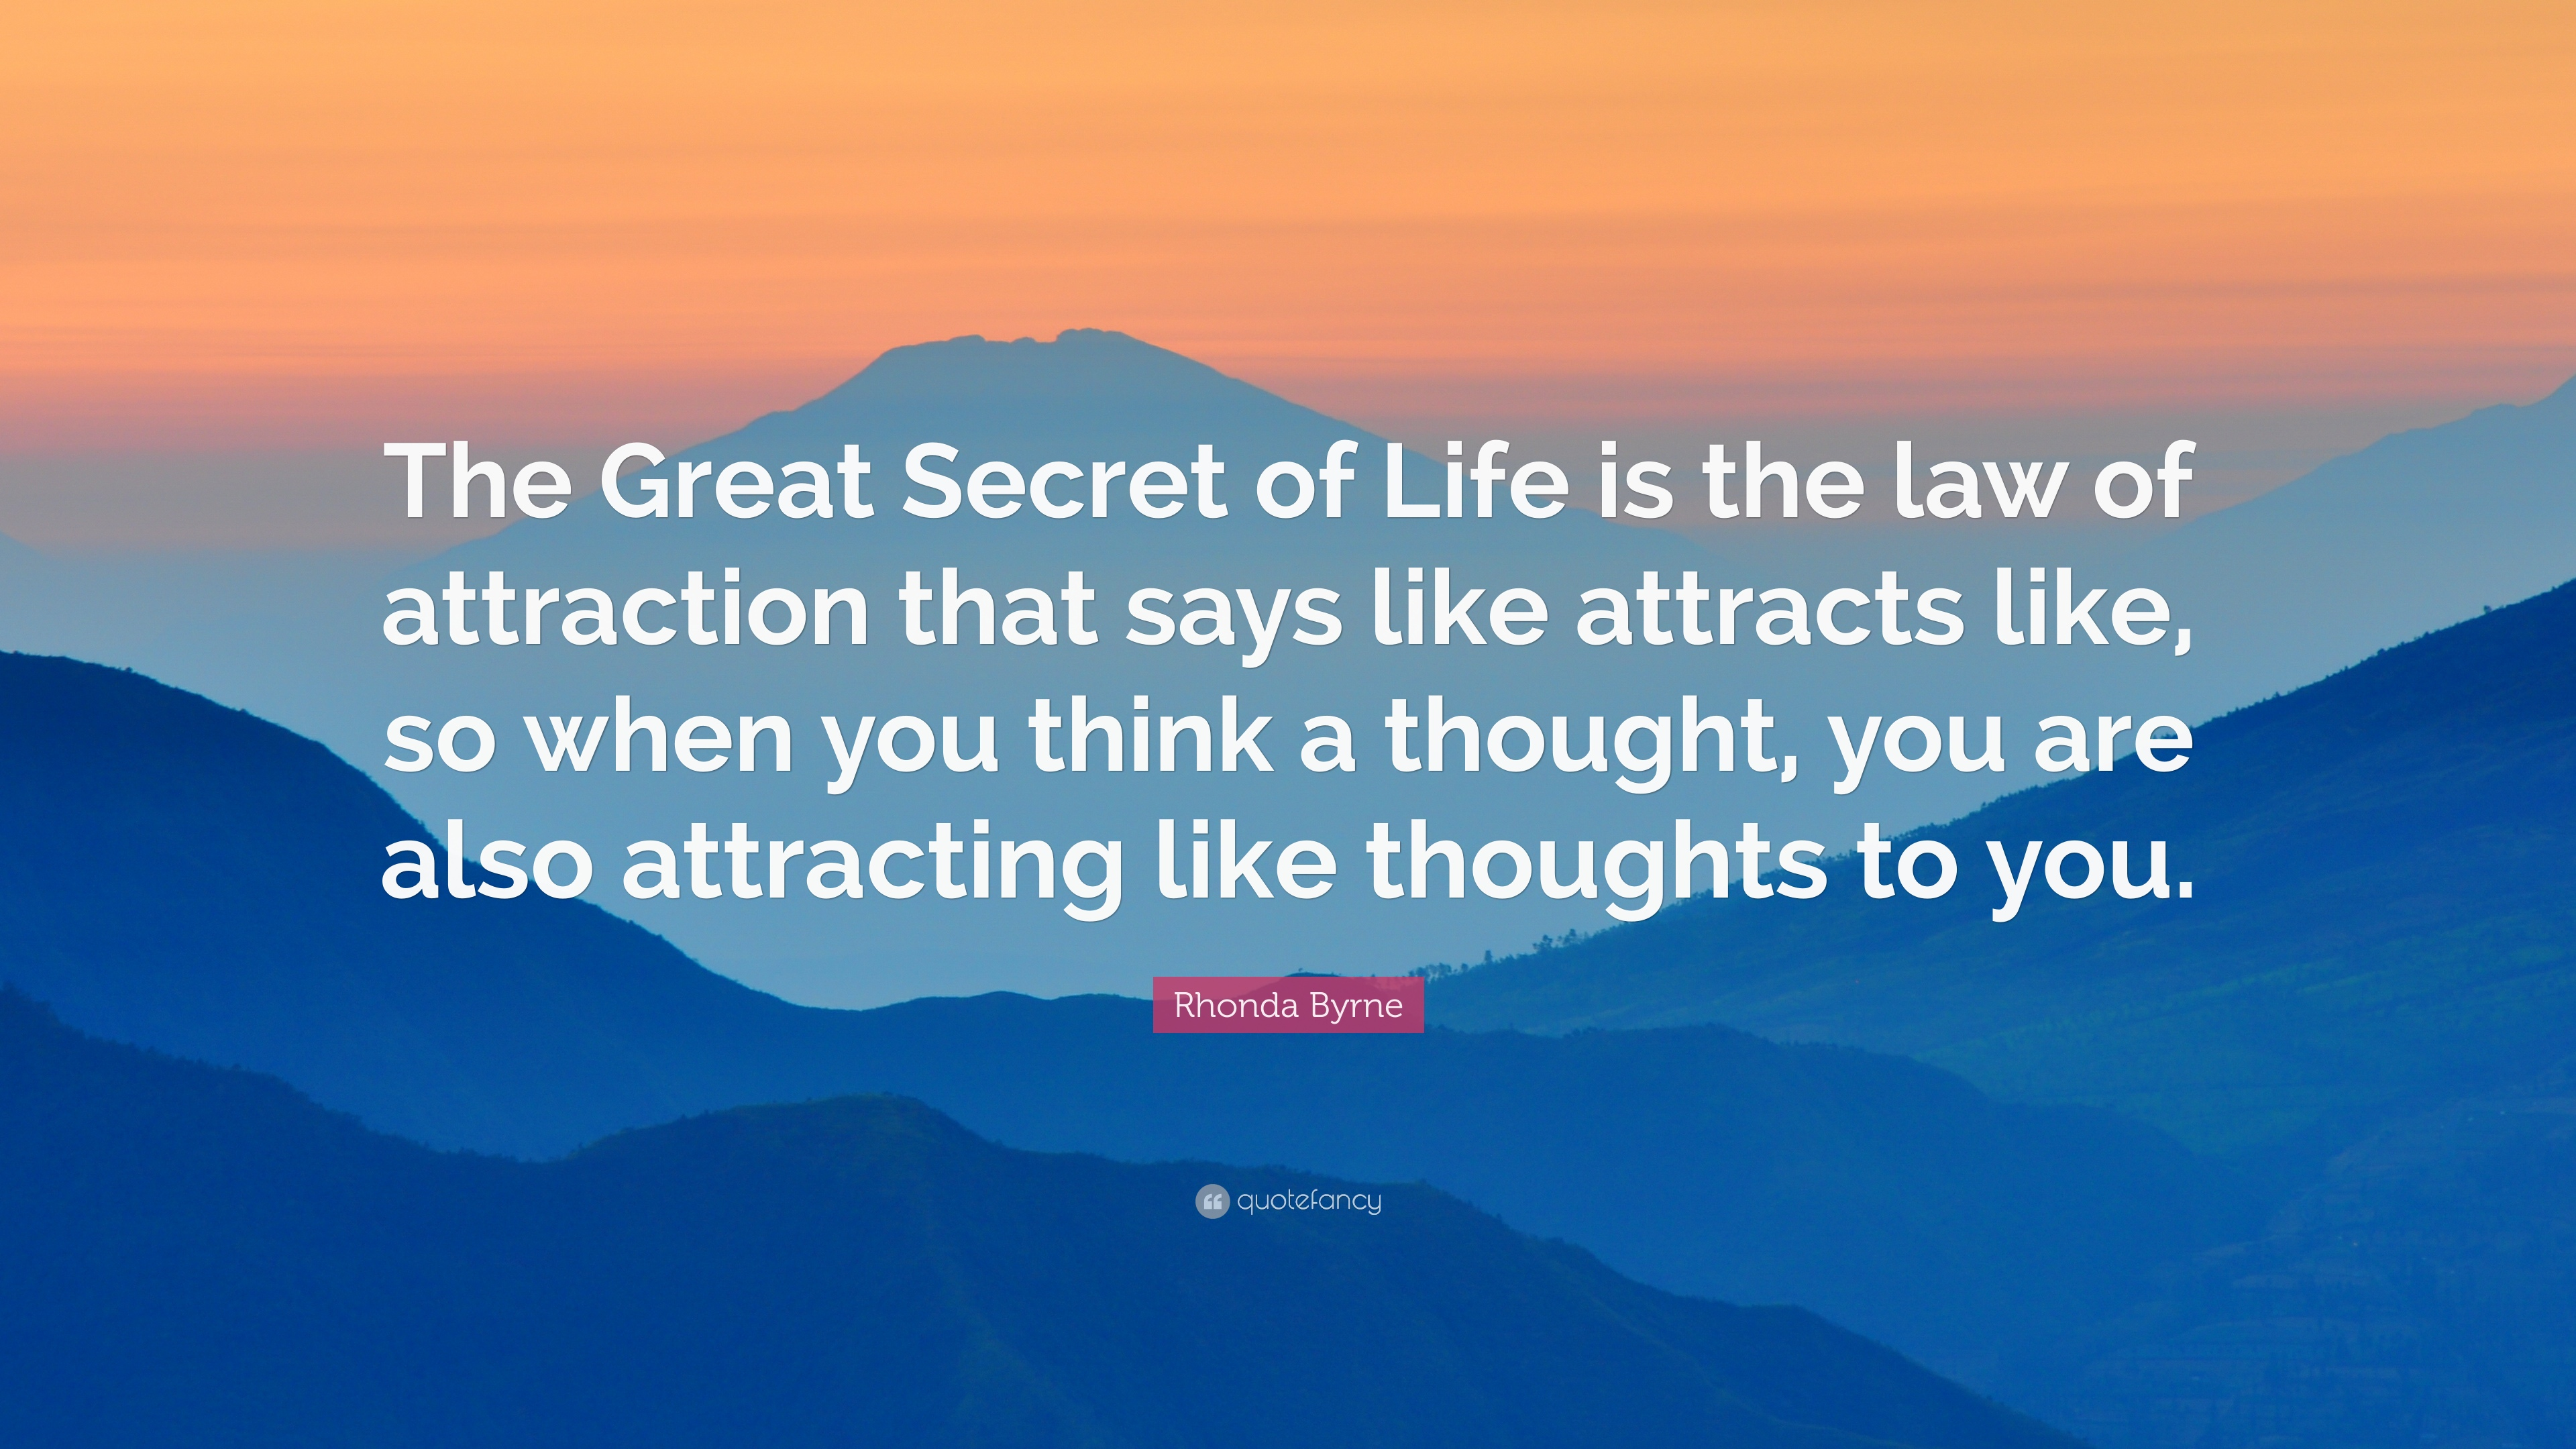 The Law Of Attraction Quotes Law Of Attraction Quotes 40 Wallpapers  Quotefancy